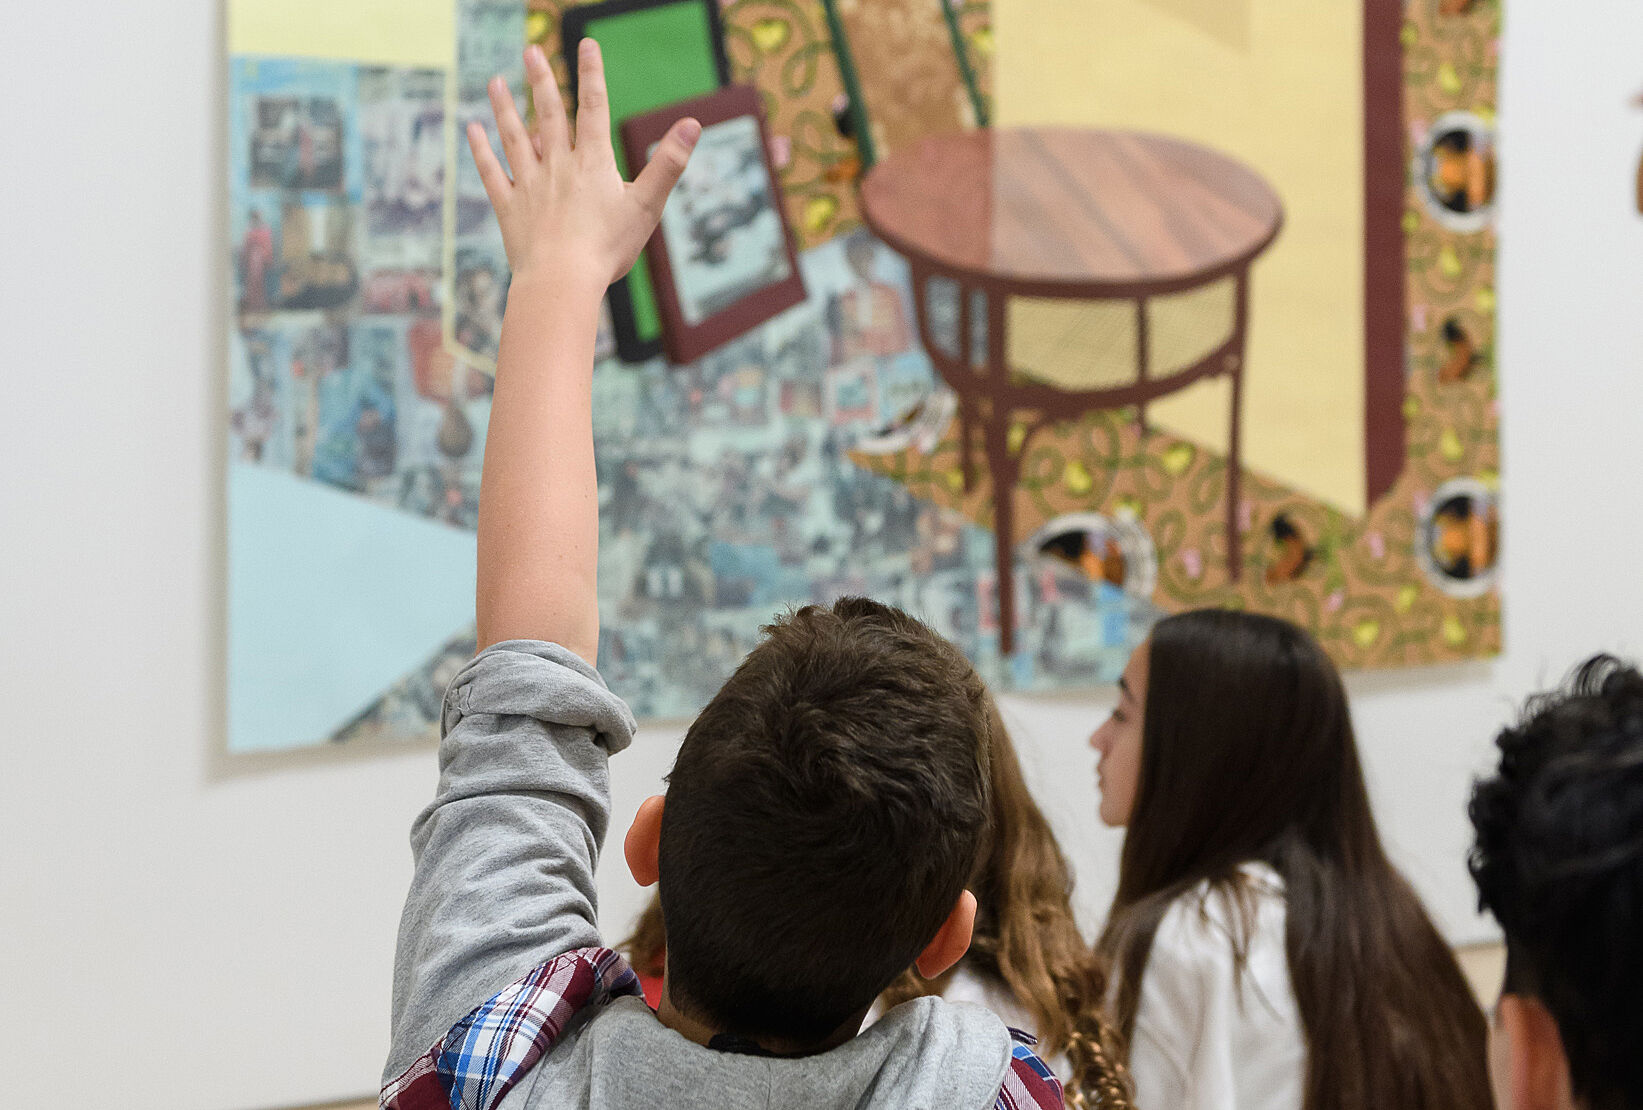 Child with raised hand in front of painting.